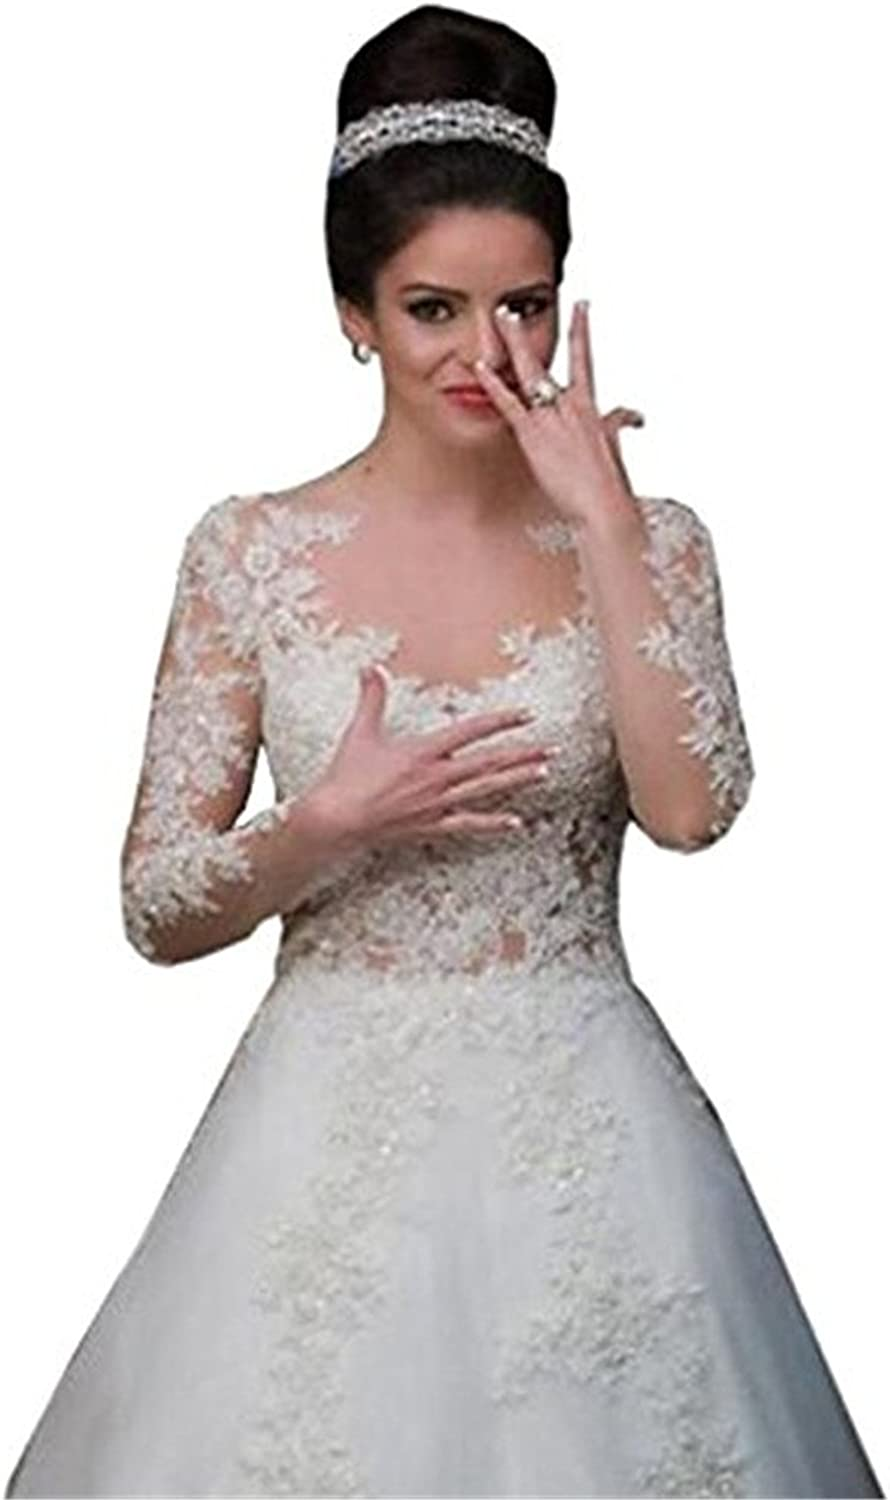 Weiterstar Women's Country Sheer Neck Long Sleeves Applique Lace A Line Wedding Dress